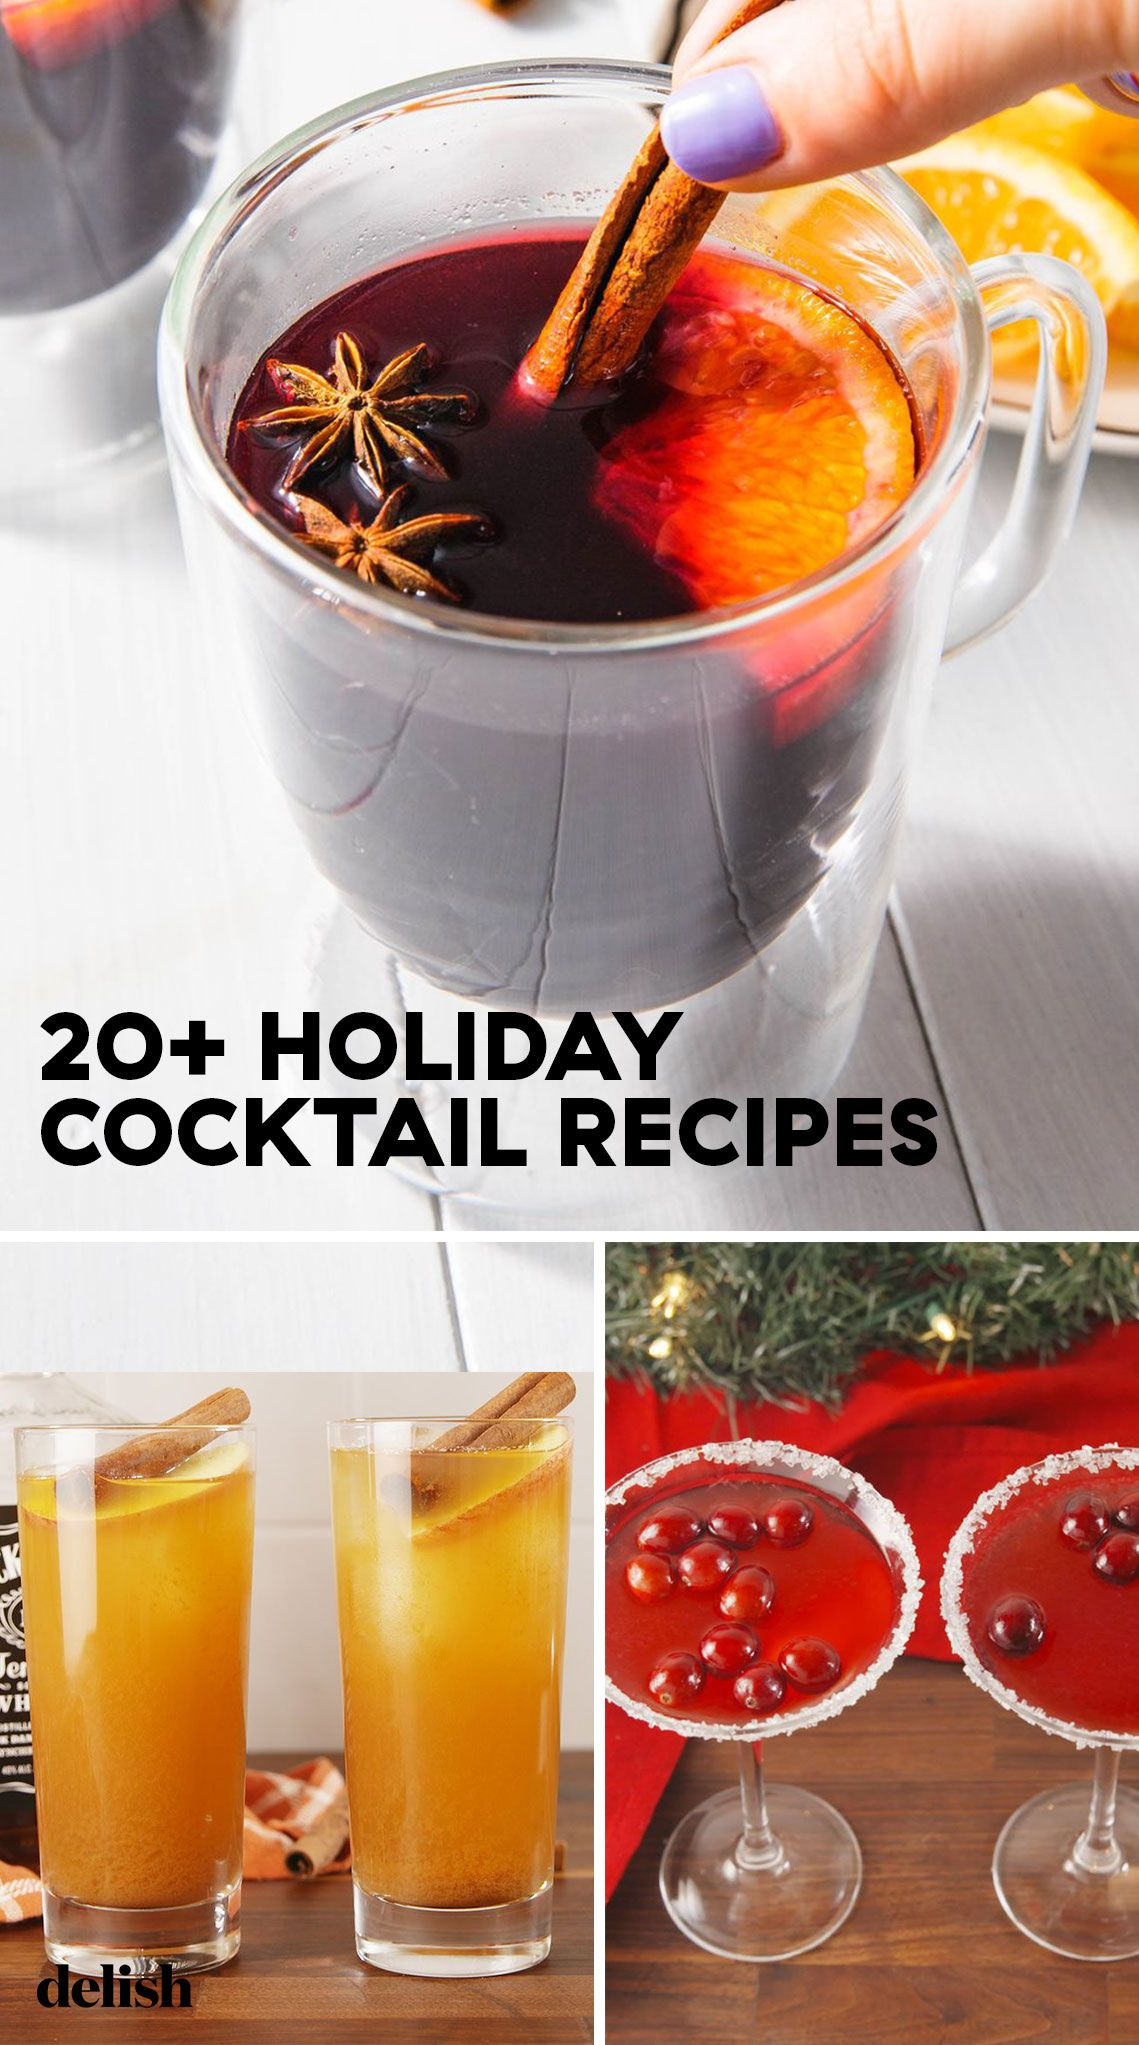 10+ Easy Christmas Cocktails - Best Recipes for Holiday Alcoholic